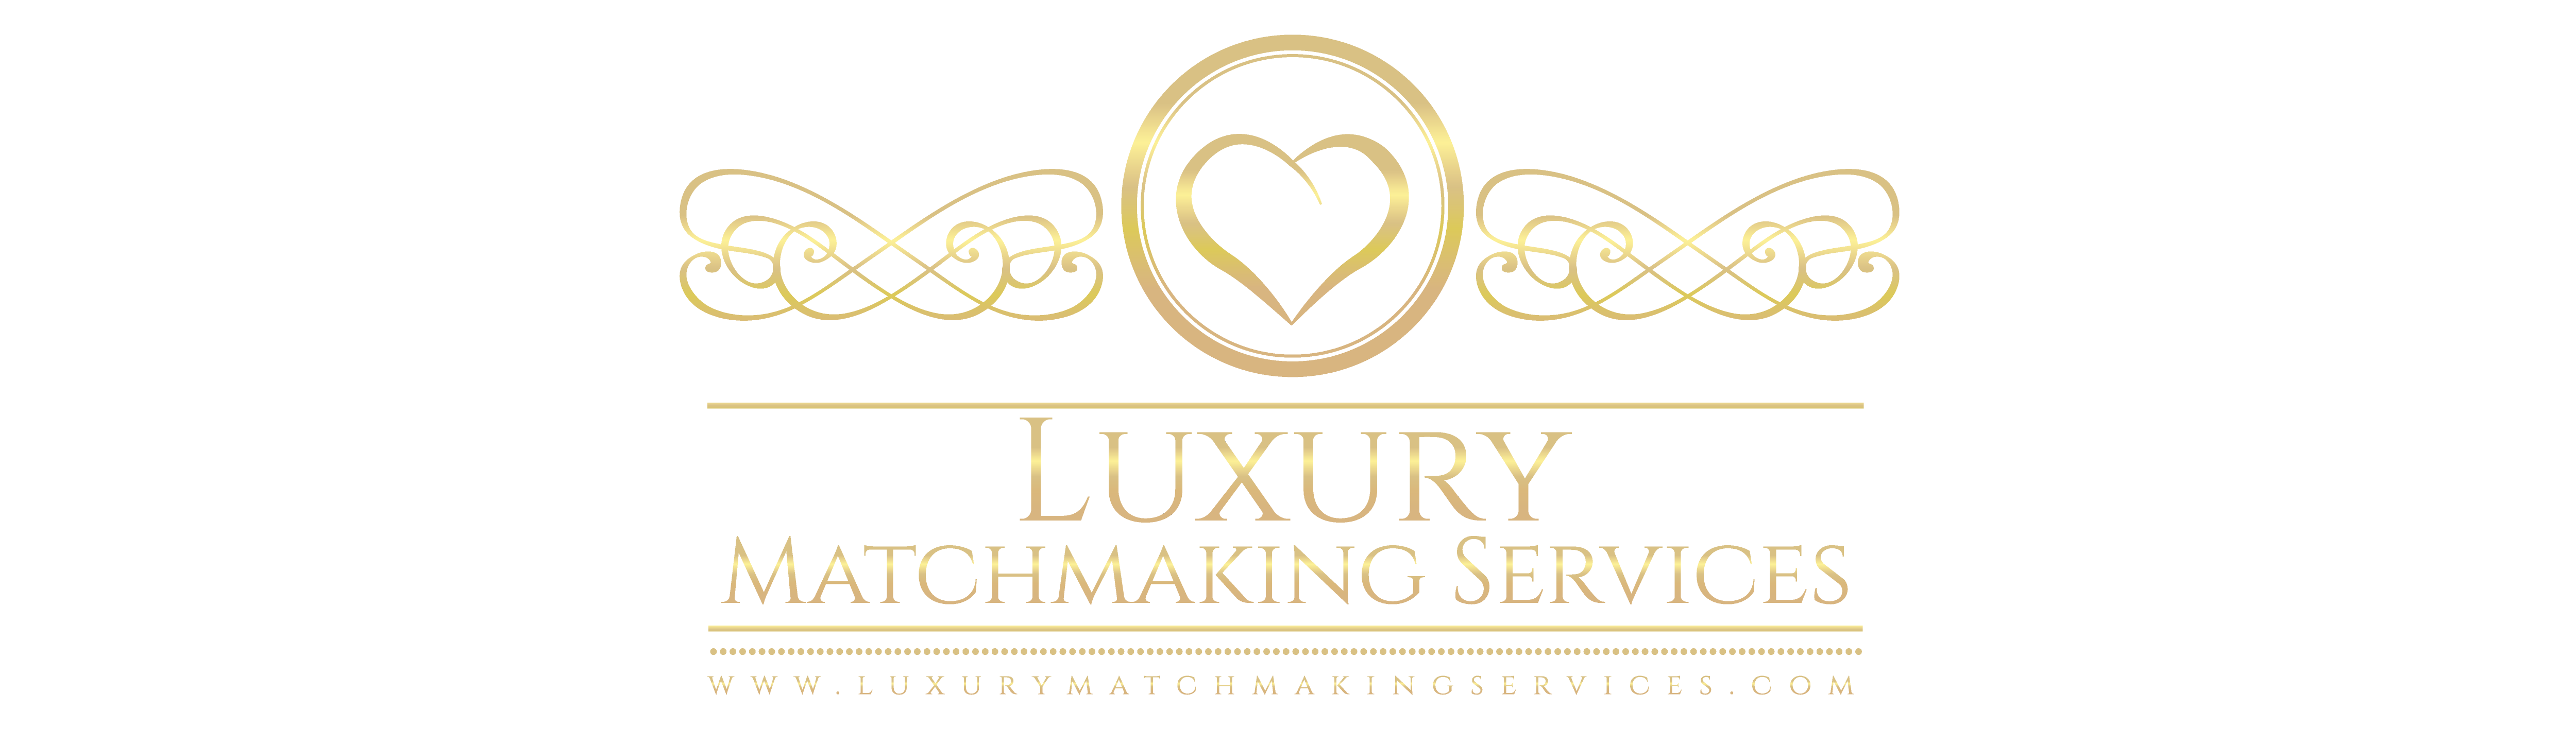 San francisco matchmaking service